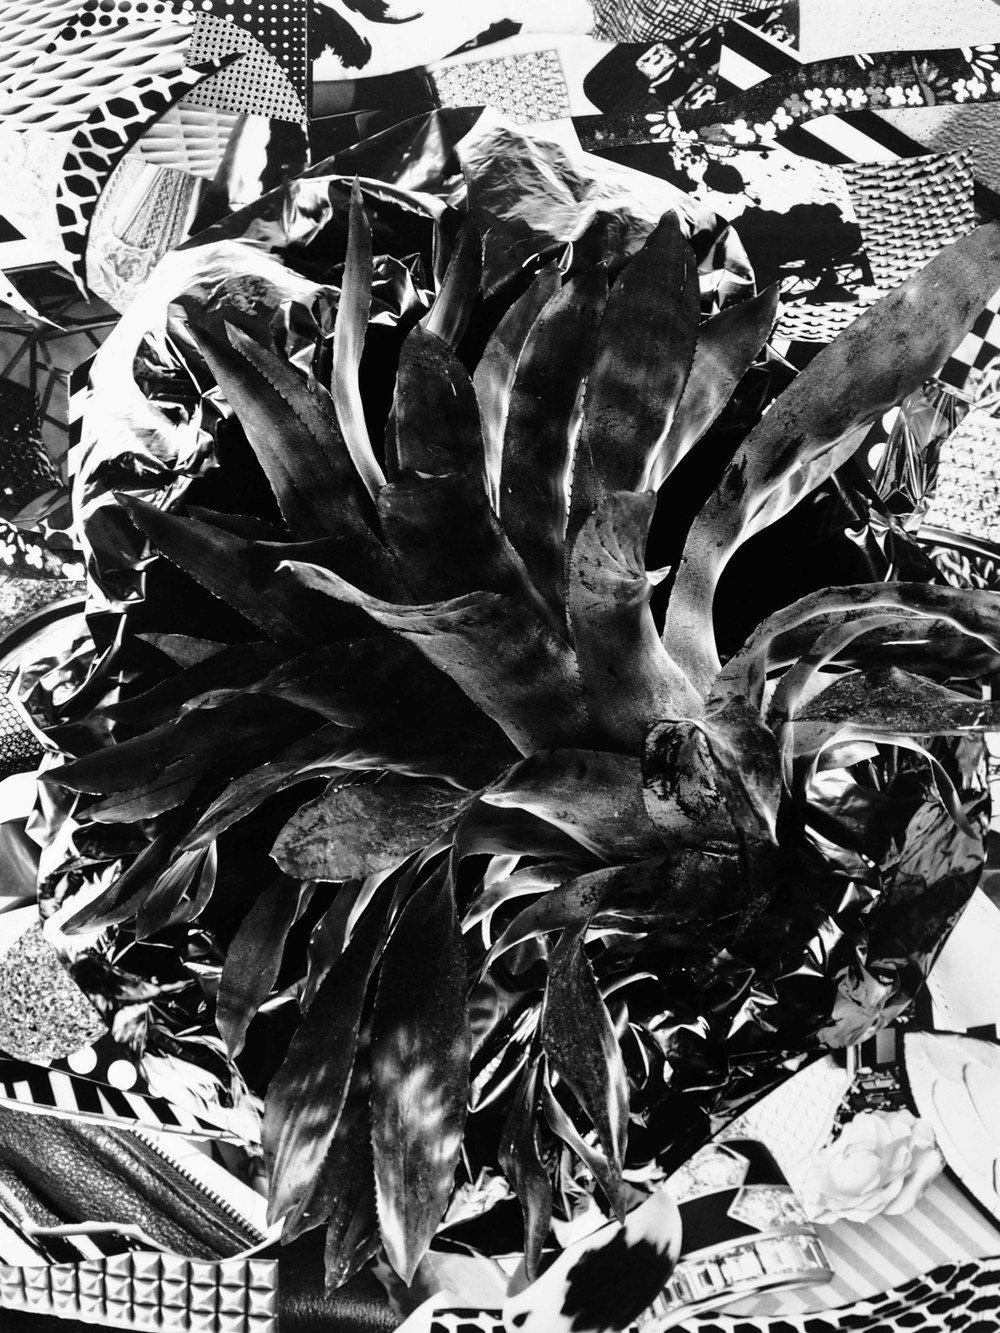 Fay Ray  Bromeliad, 2015  Polyvinyl acetate, sumi ink, and archival pigment prints  22 x 1 7 inches